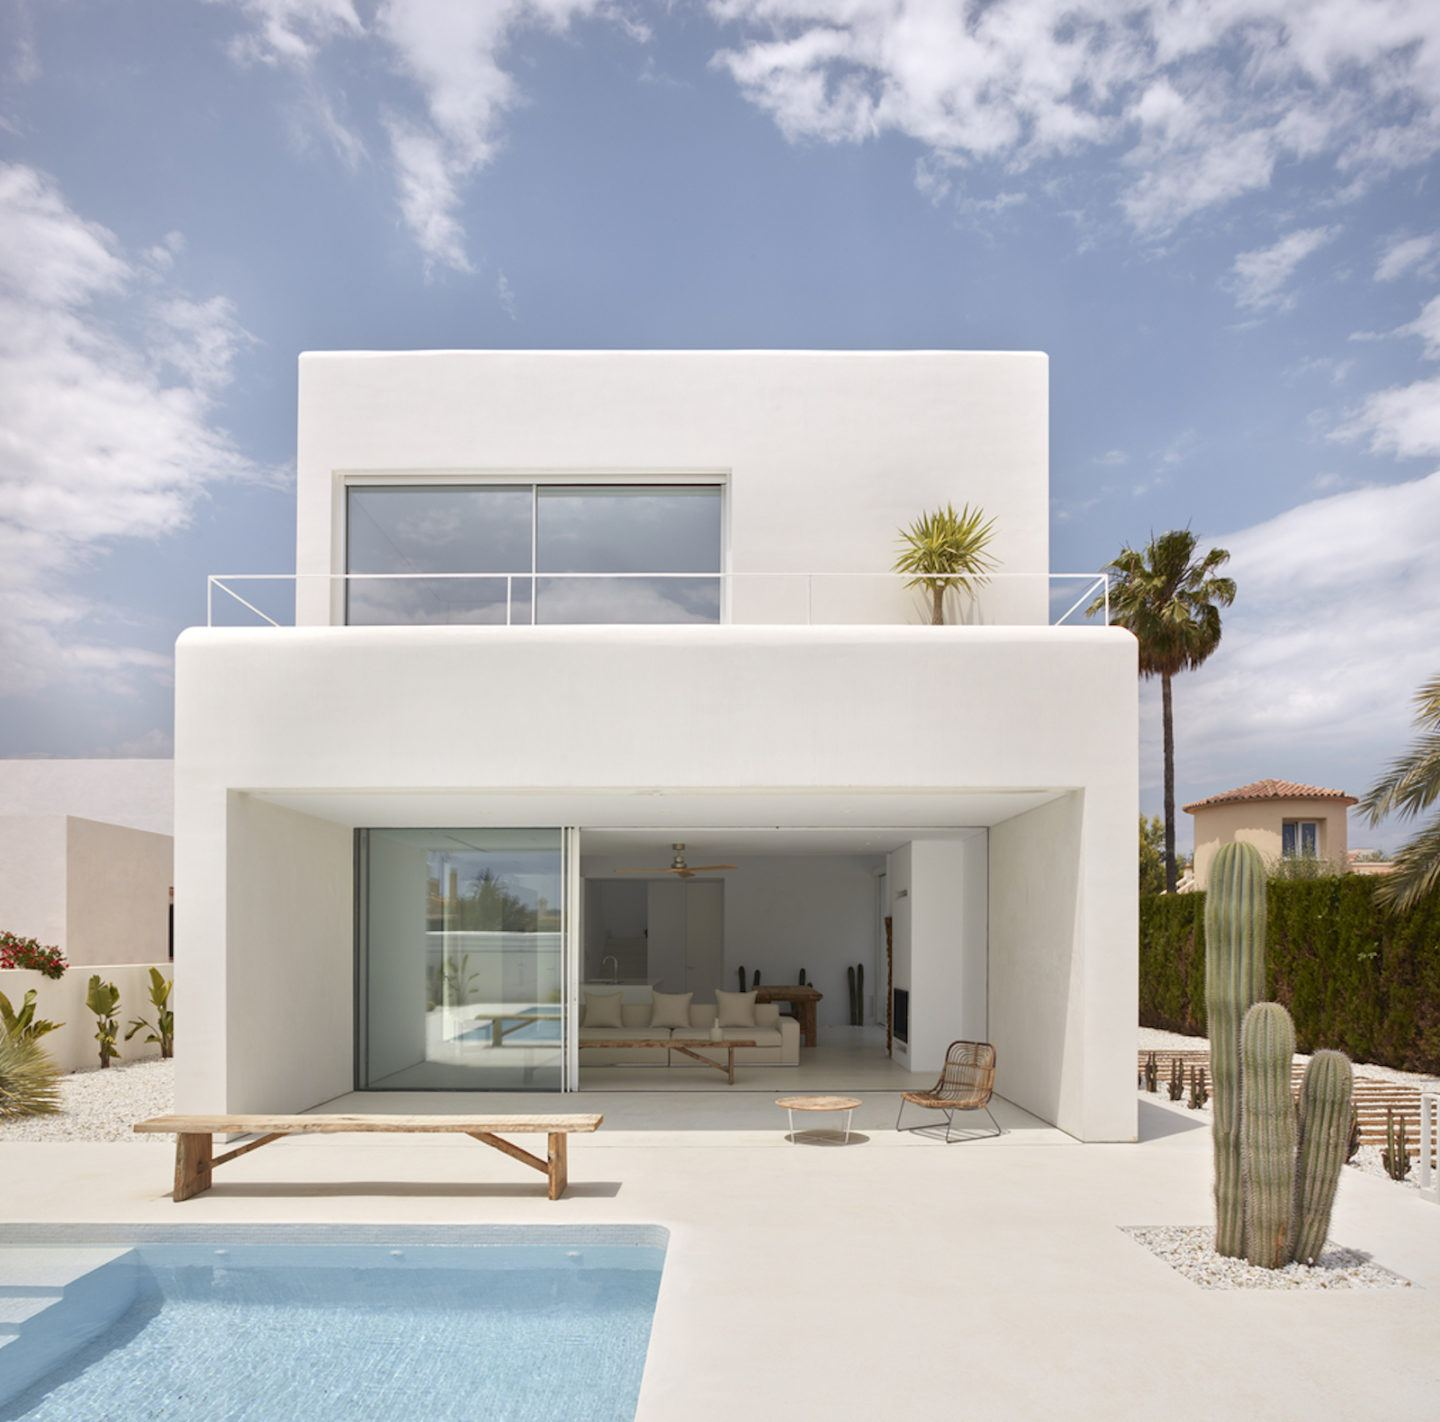 An ibizan style country home in spains sunny province of alicante